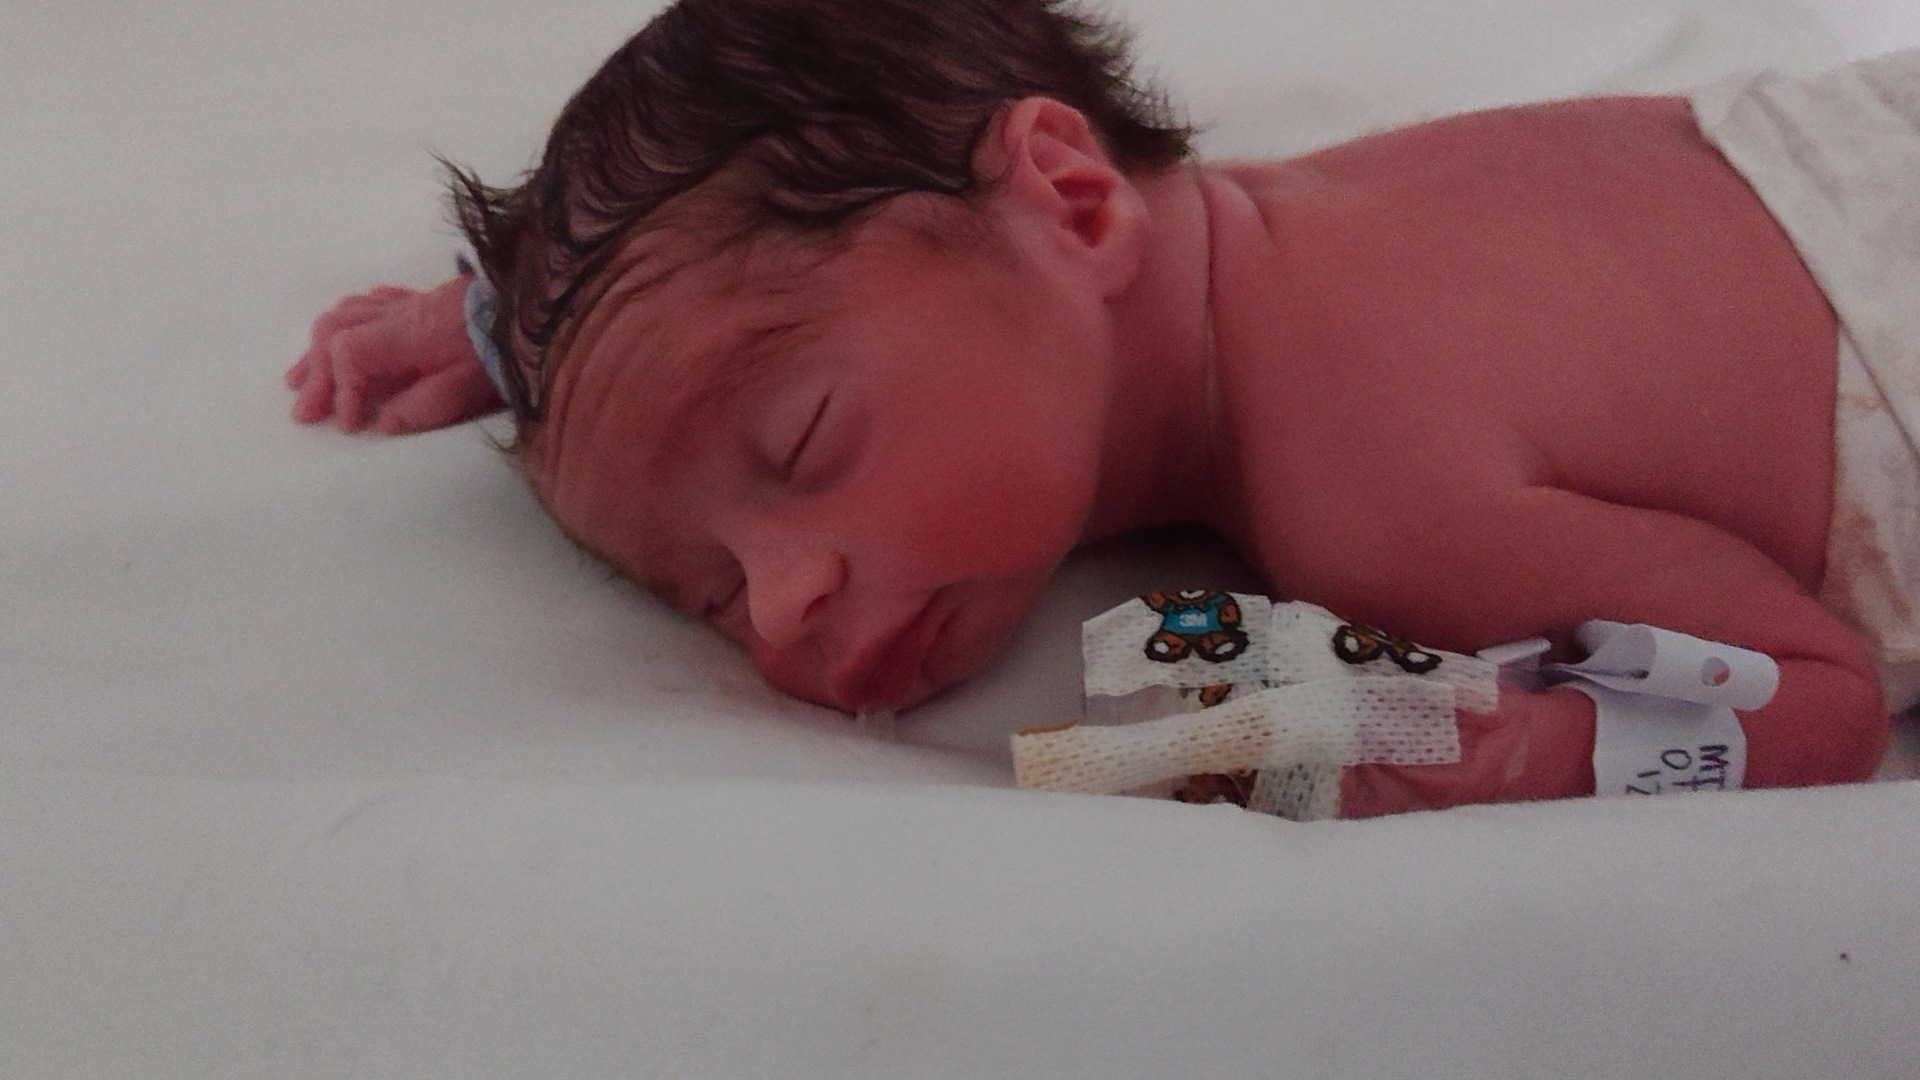 St Helens Star: Theo, born 15/11/20, weighing 4lb 4oz.6 weeks early @whiston, spent 10 days in scbu, fingerpost, St helens